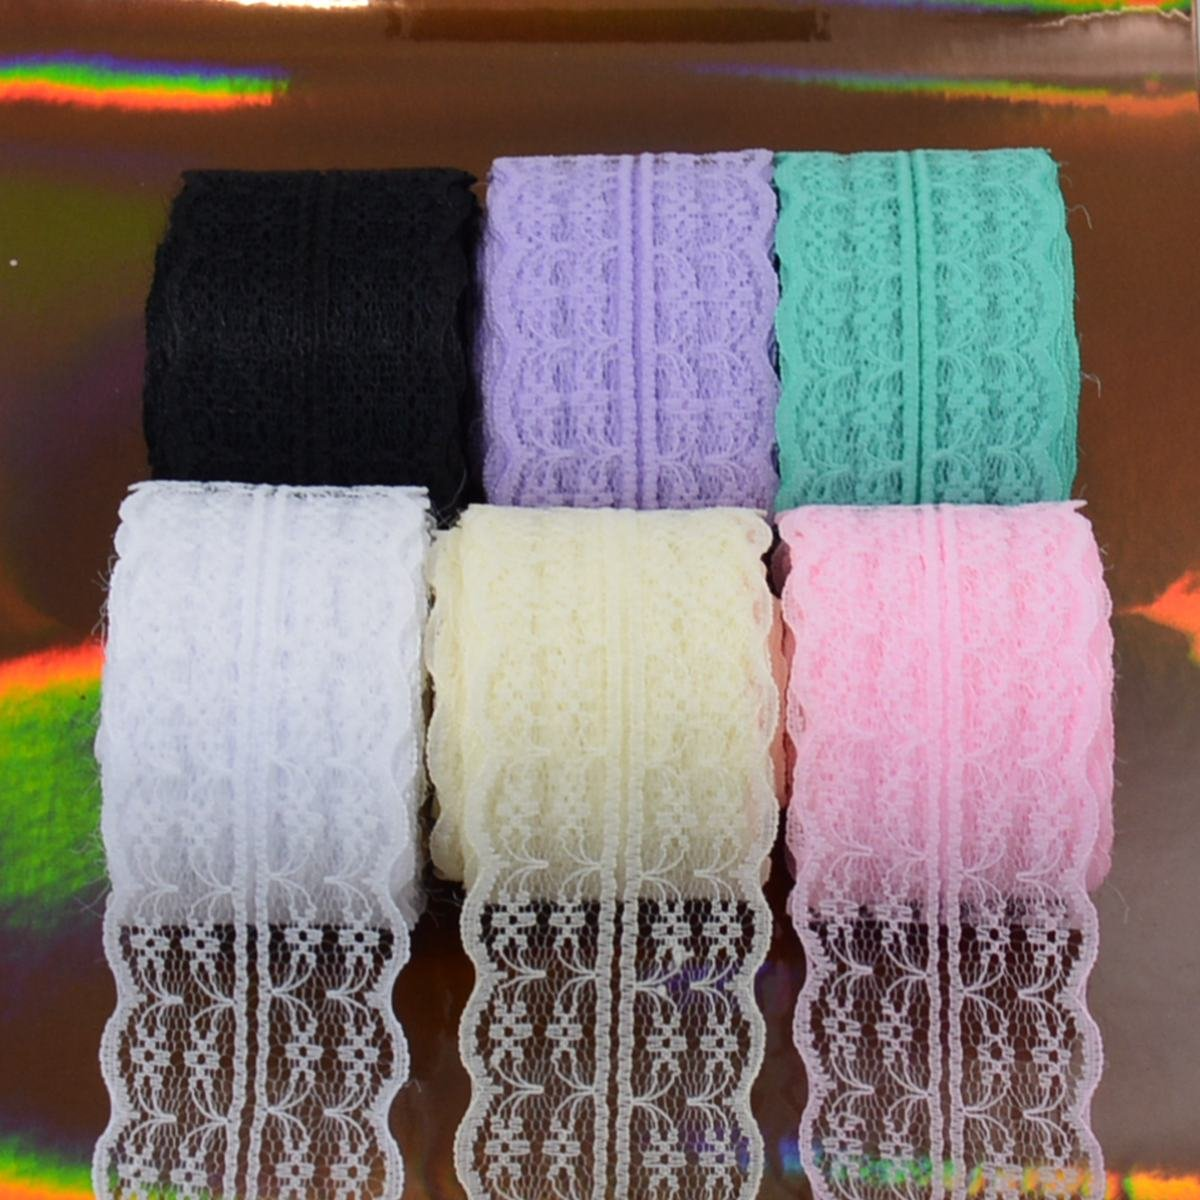 10 Yards//Each Roll 60 Yards 1.8 inch Wide 6 Colors Lace Trim Ribbon with Floral Pattern for Wedding Invitation Cards Inclduing 6 Rolls Sewing Mix color-01 Decorating Gift Package Wrapping